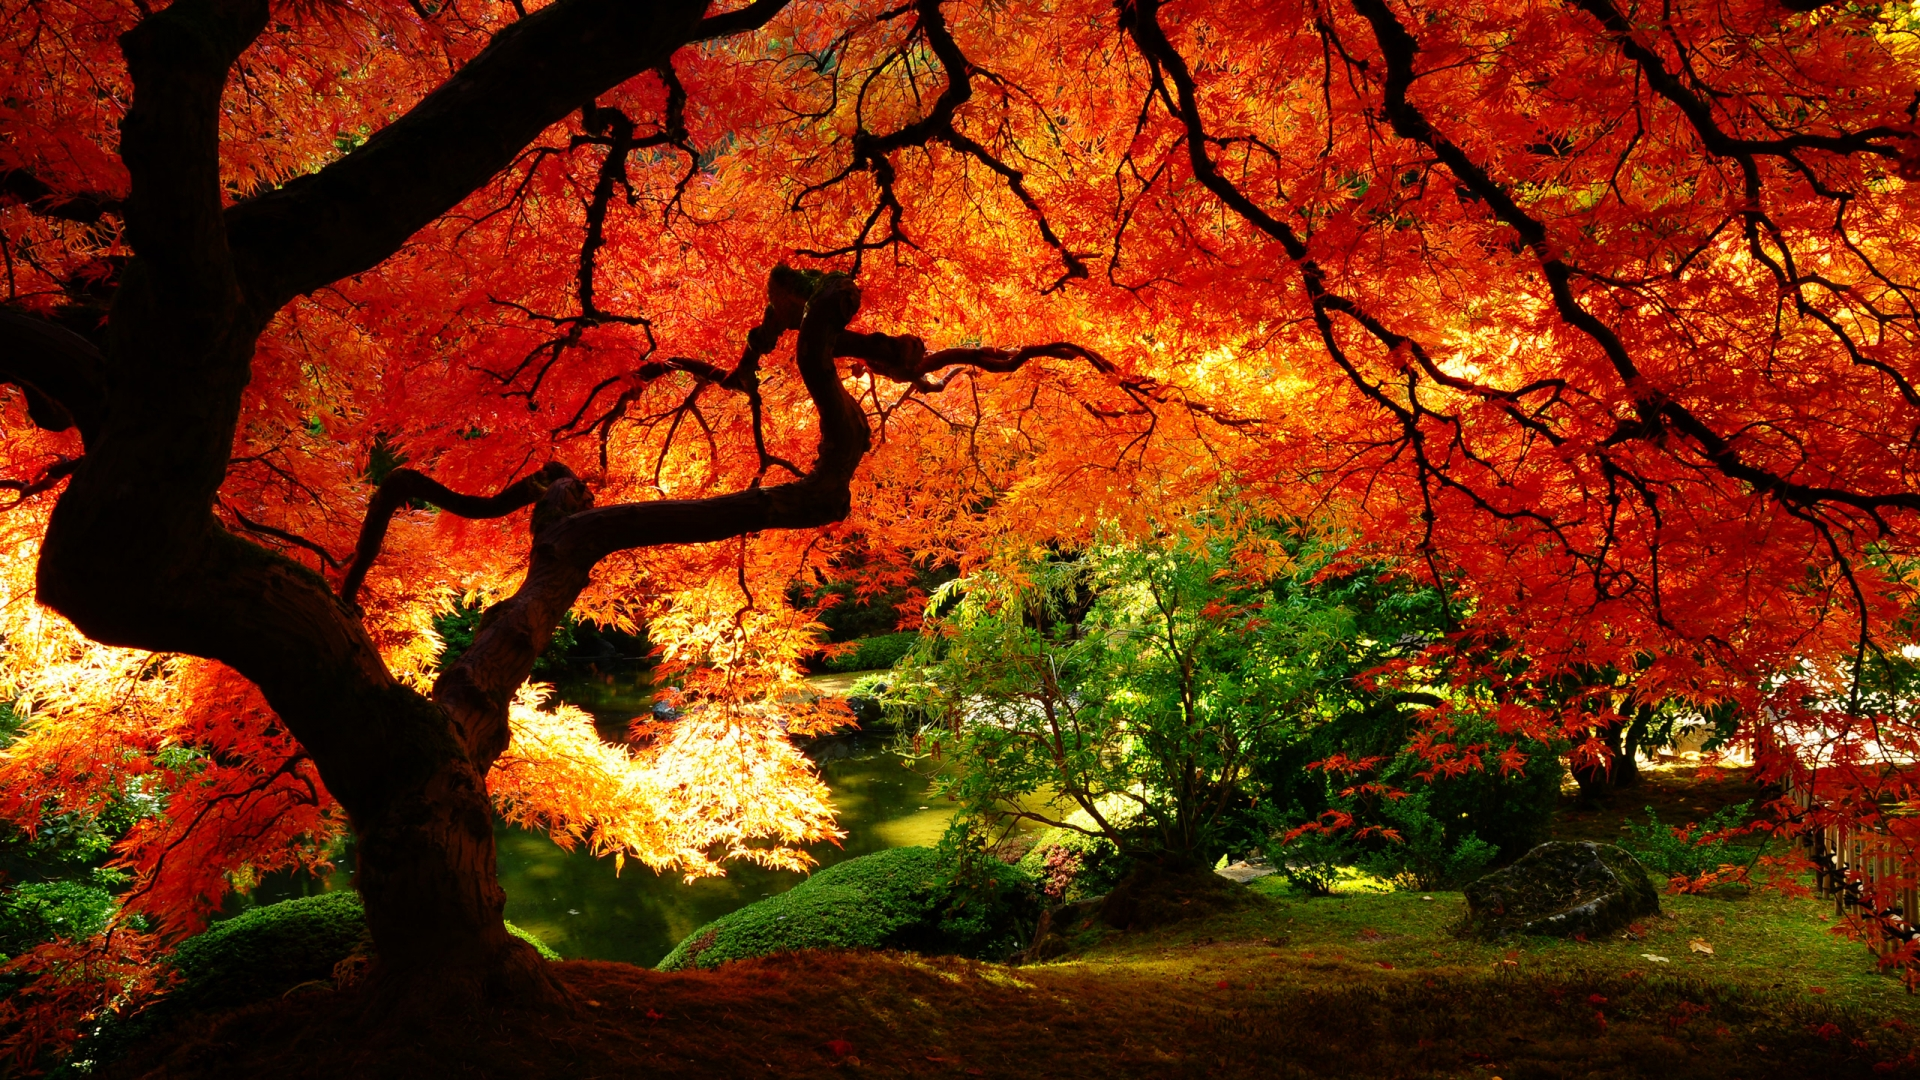 hd-wallpapers-free-autumn-desktop-background